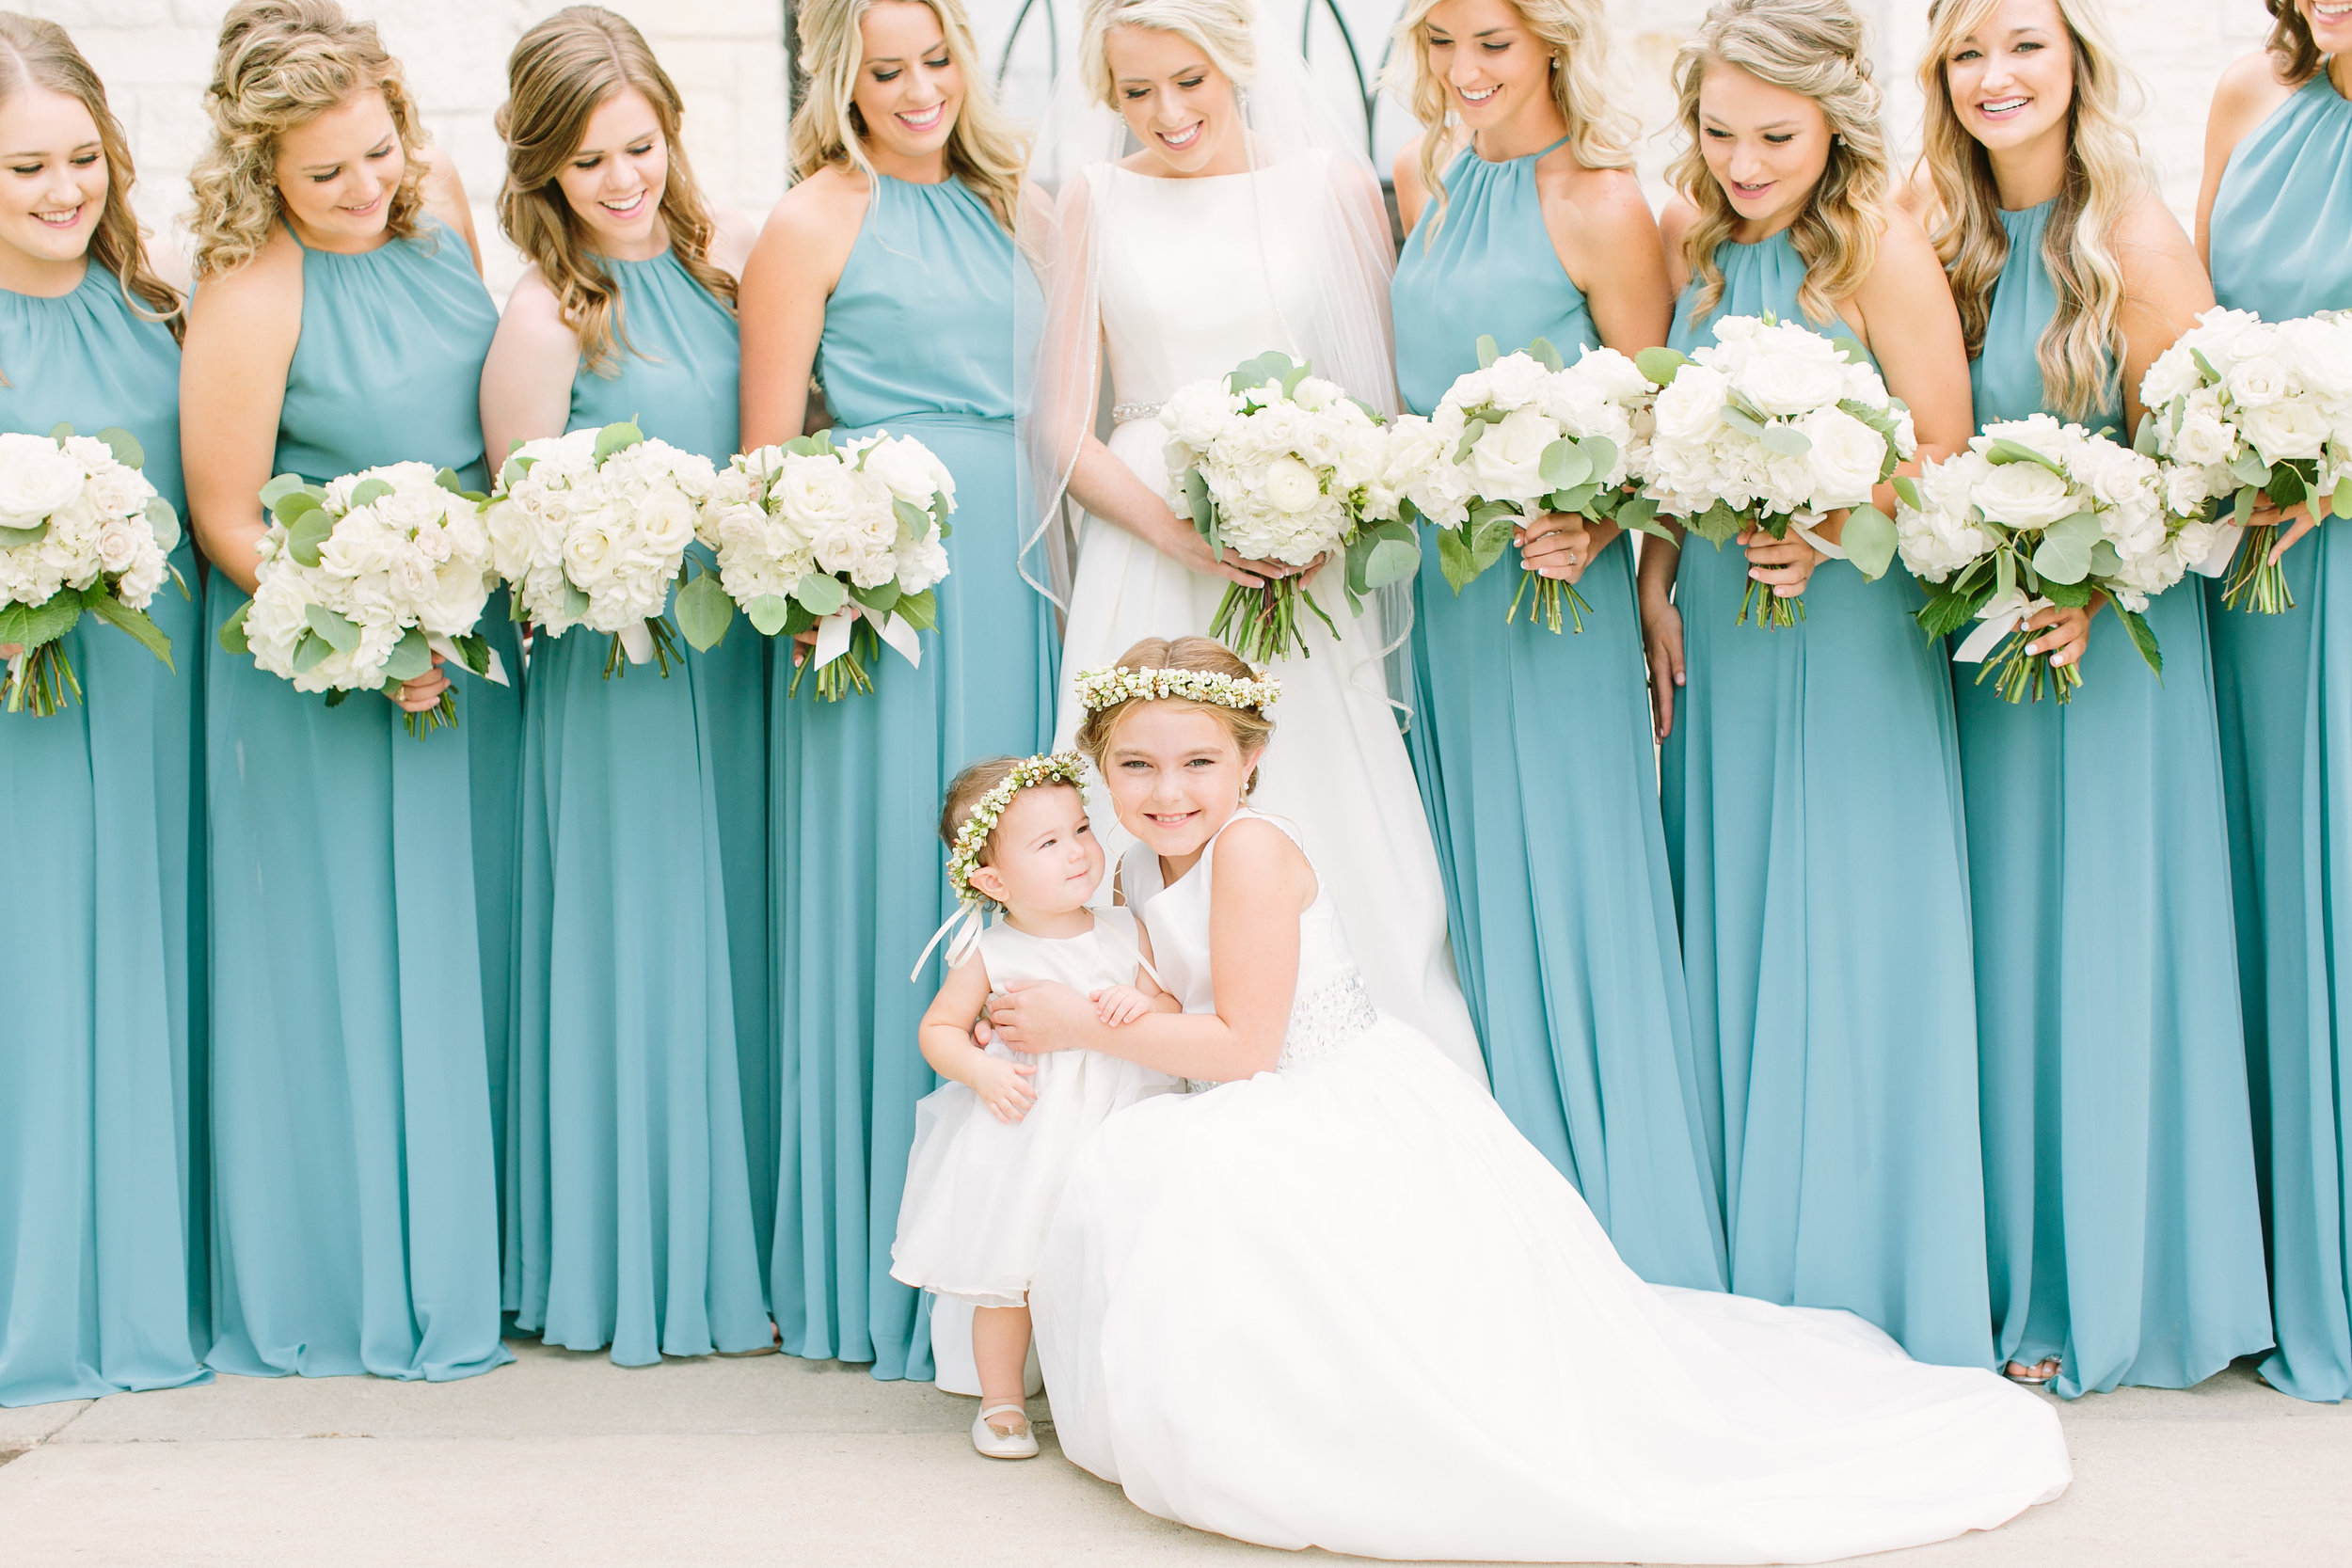 bride-bridesmaids-teal-light-blue-dress-flower-girl-floral-crown-white-bouquet-by-maxit-flower-design-in-houston-texas